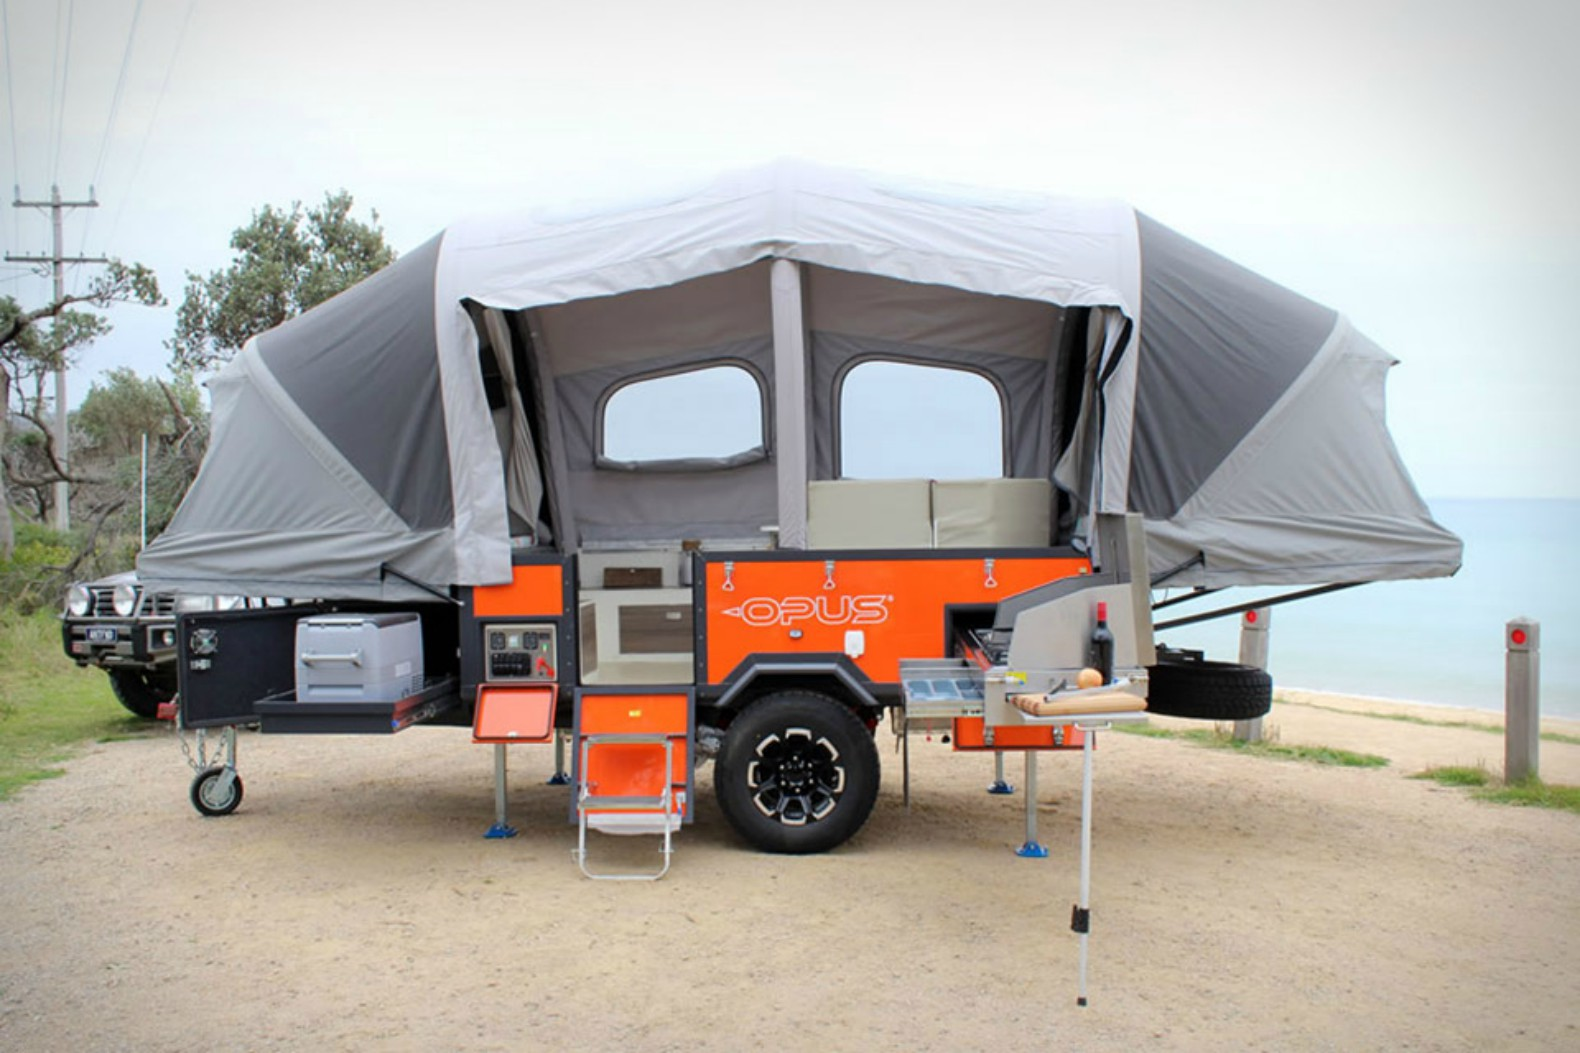 The Air Opus pop-up camper inflates in 90 seconds flat